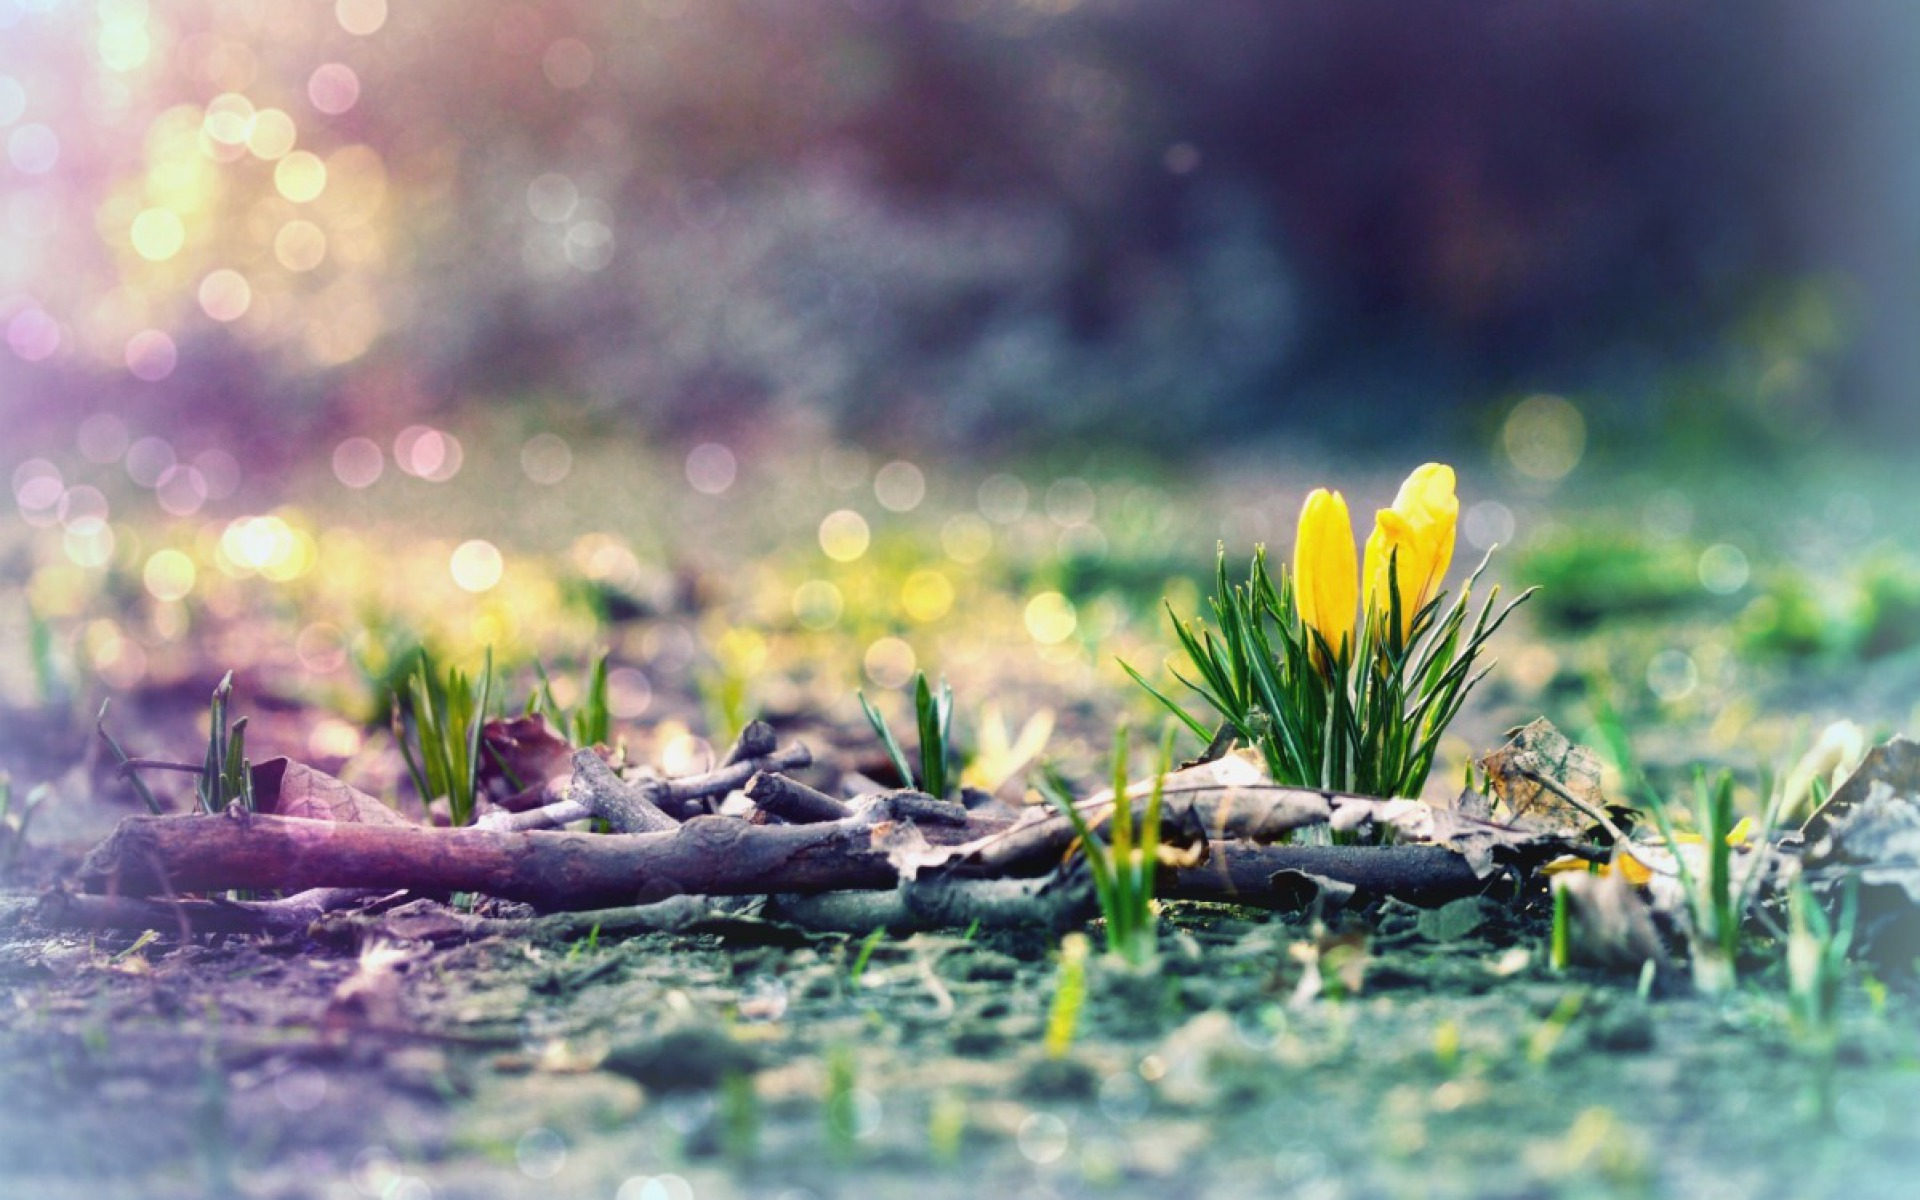 Spring Wallpapers for Desktop 1440x900 - WallpaperSafari |Spring Thaw Background Computer